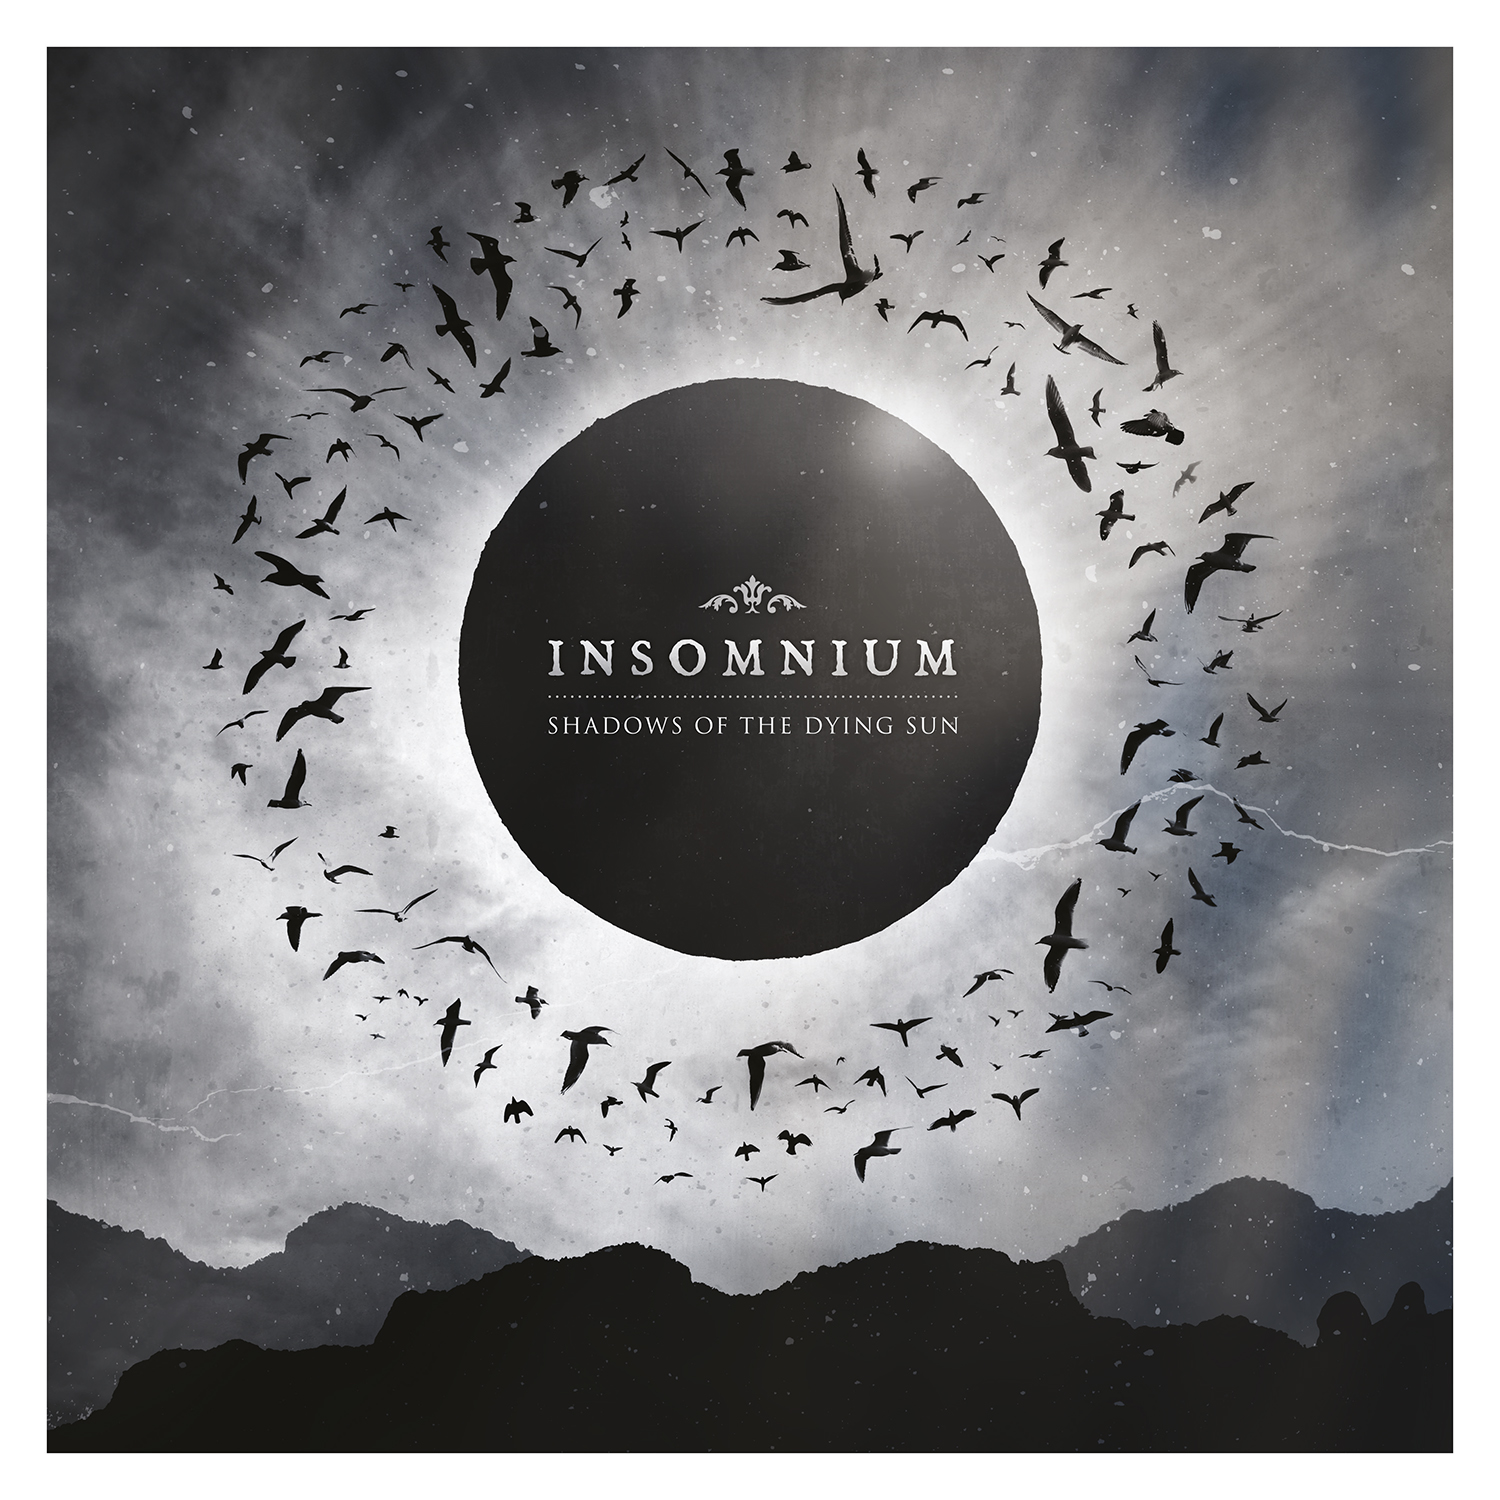 Insomnium – Shadows of the Dying Sun Review